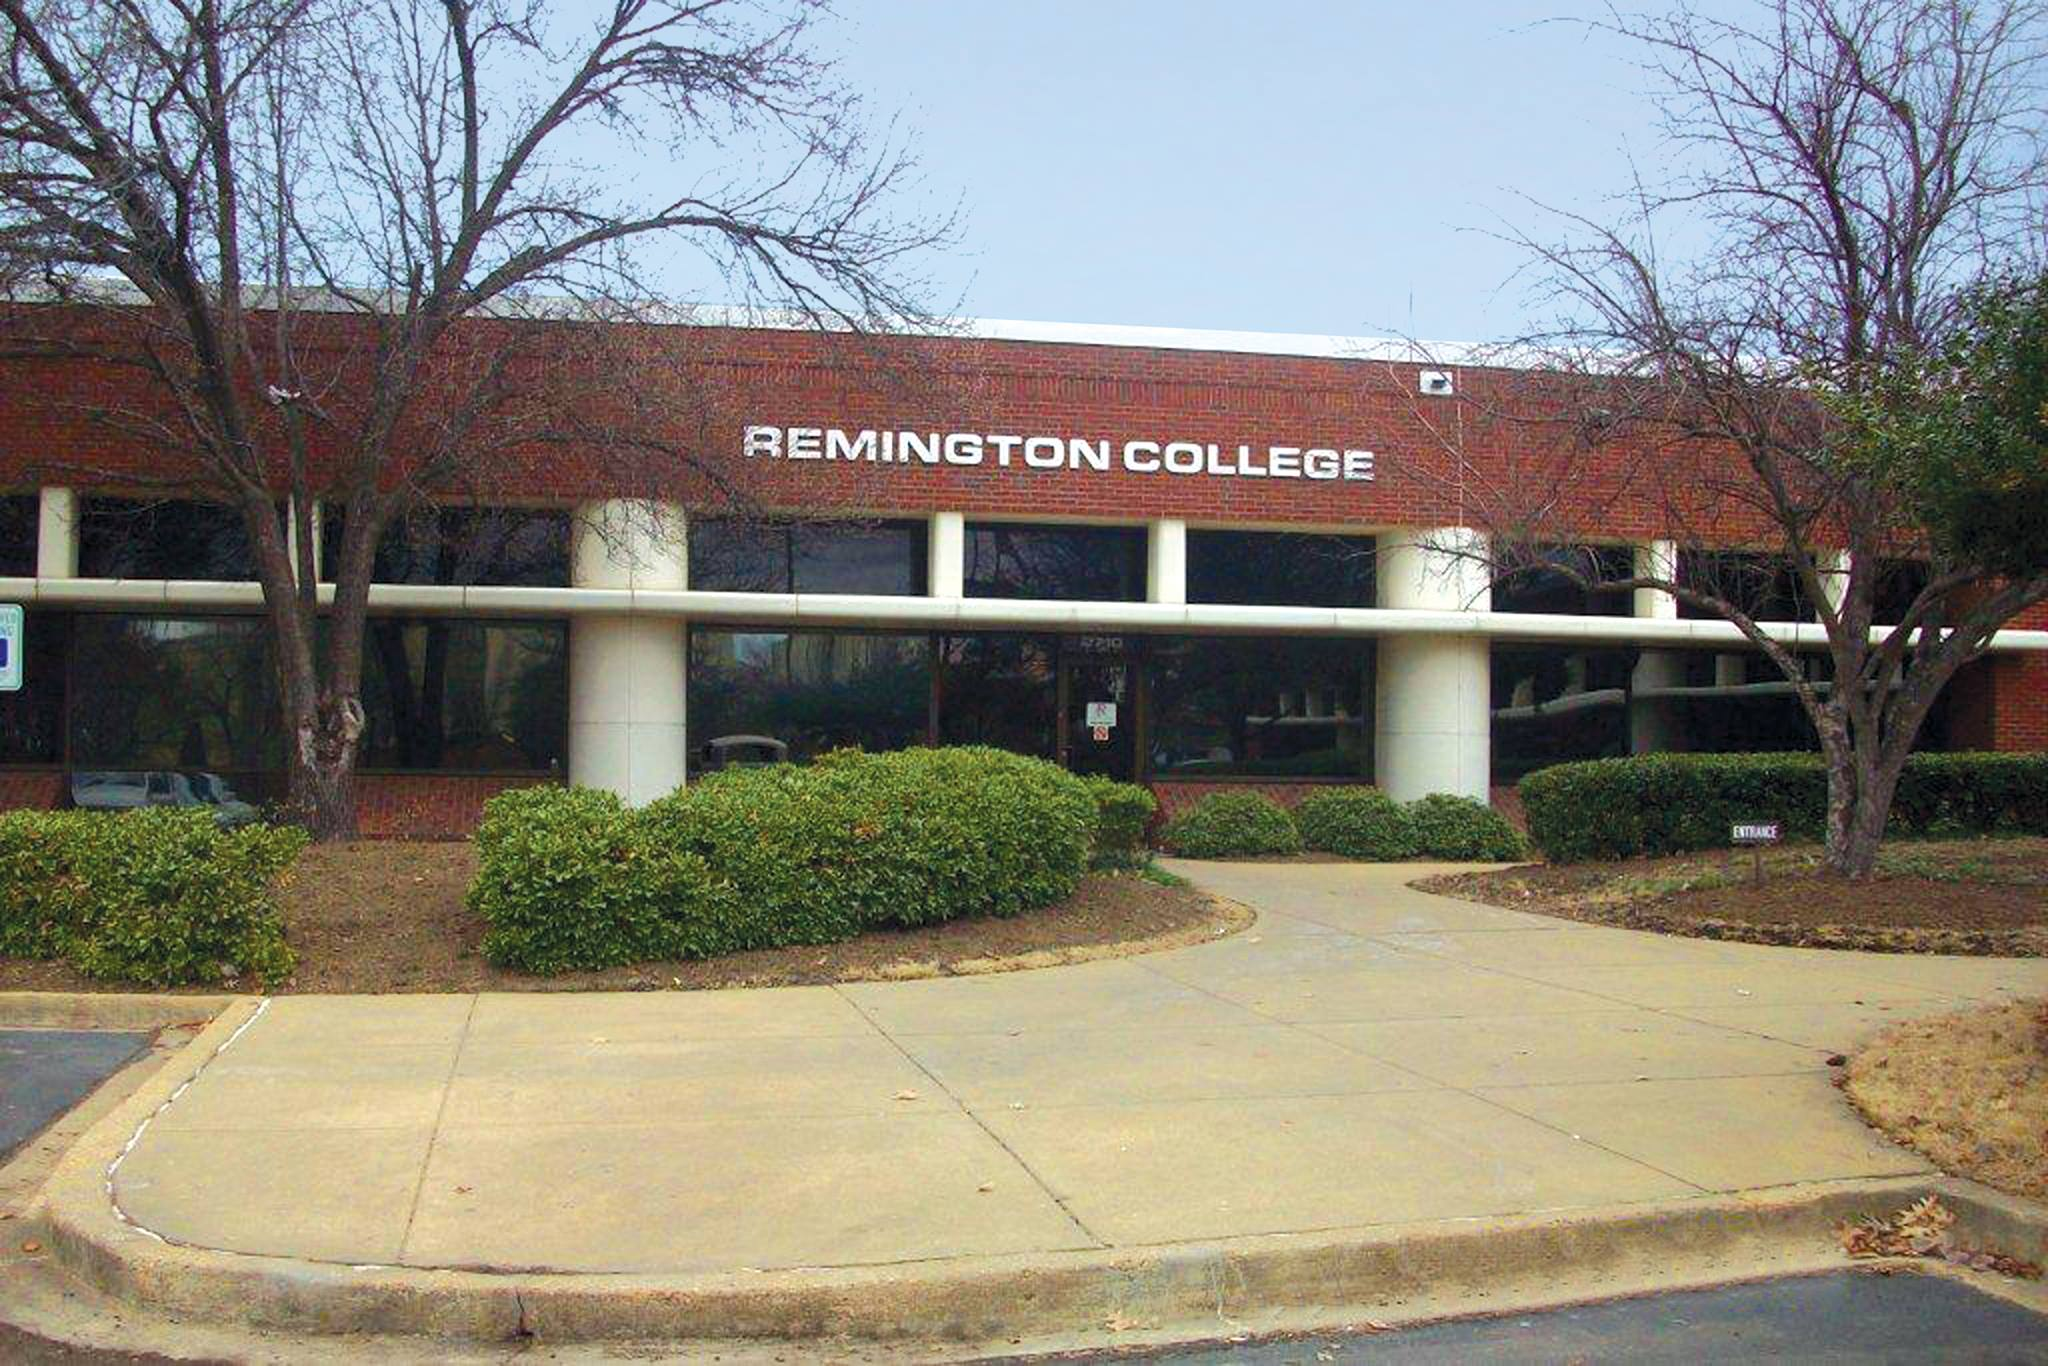 Remington College  Memphis, Tn. Garage Door Repair Denver Co. How To Fill Out Income Tax Forms. High Interest Rate Saving Account. Bennett Career Institute Home Insurance Guide. New Zealand Mortgage Rates How To Get Domain. Medical Flight Services Ink Cartridges Coupon. Internet Providers In Marietta Ga. Colleges For Producing Music Index Of Dcim